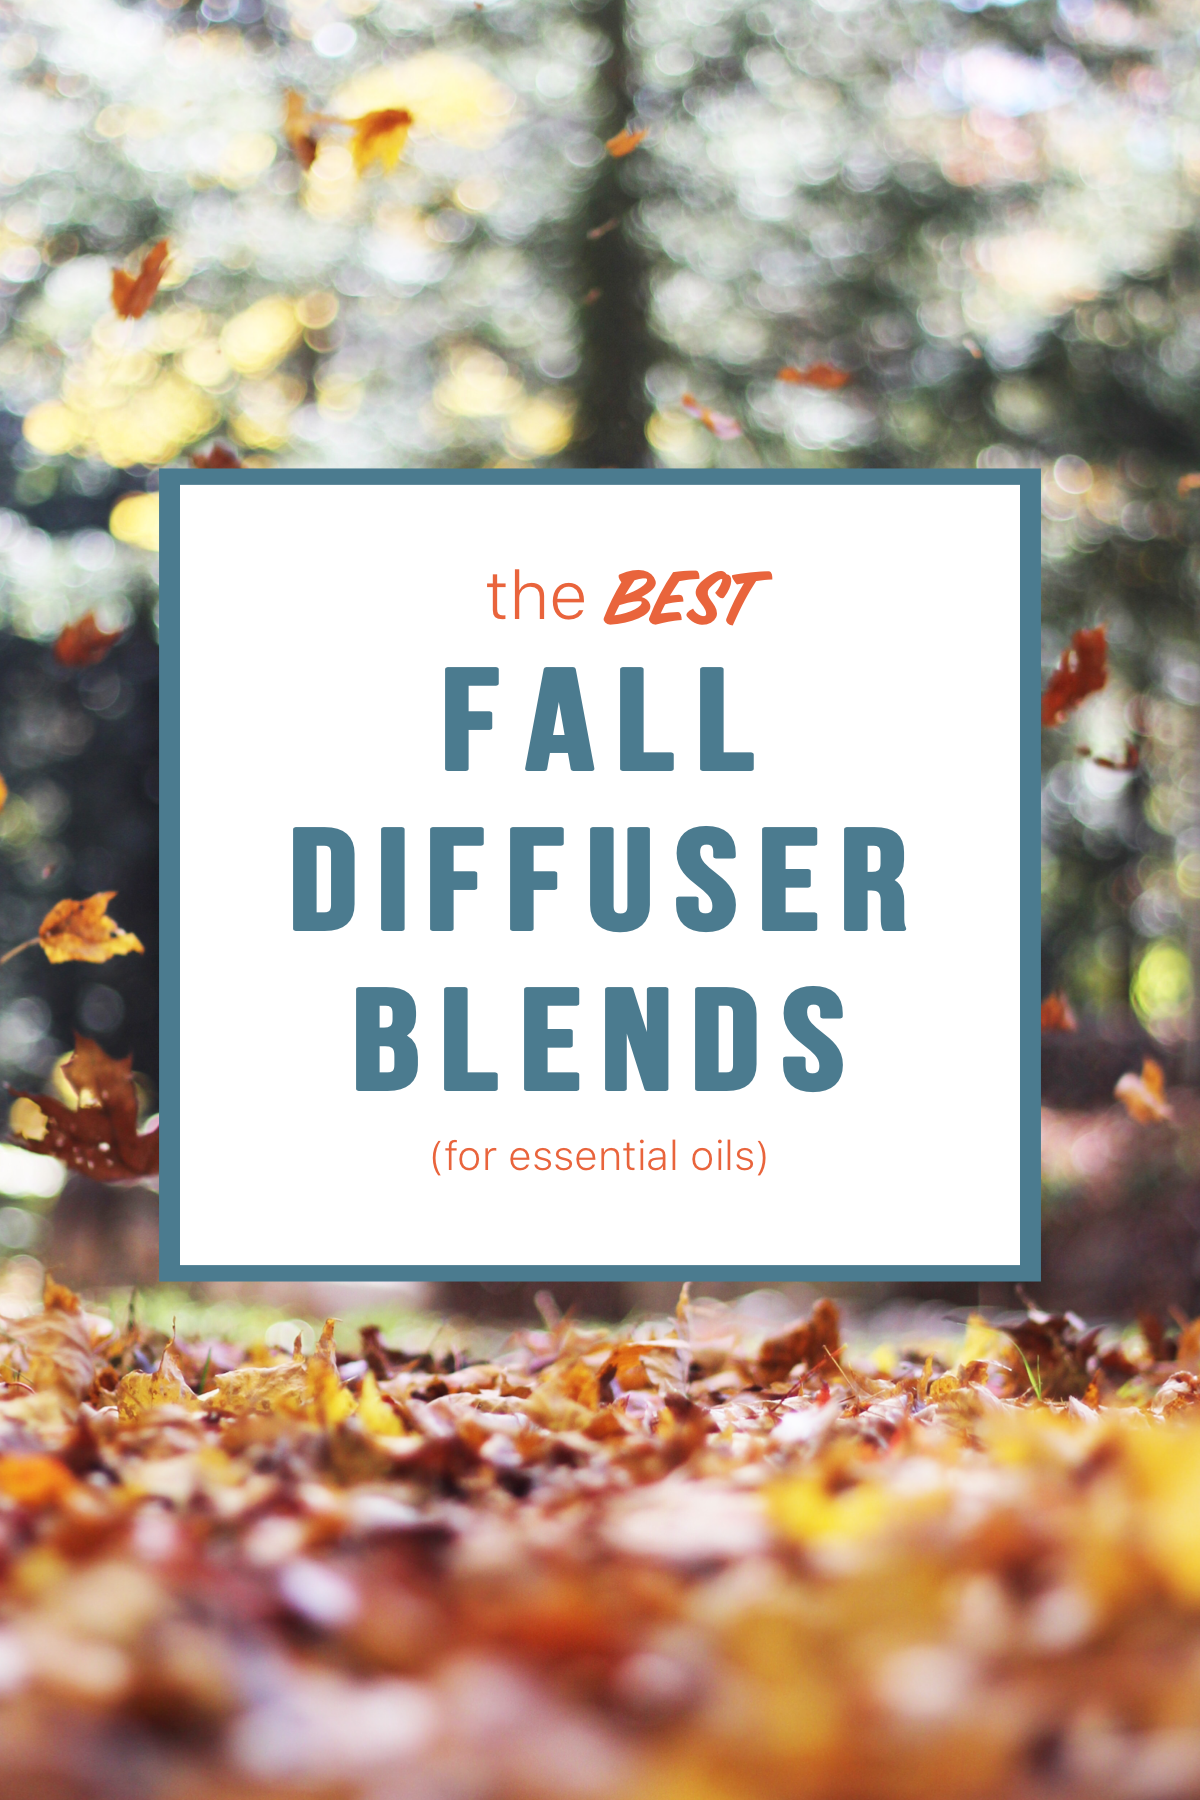 the BEST fall diffuser blends (for essential oils) | @lifeasaloewen on IG